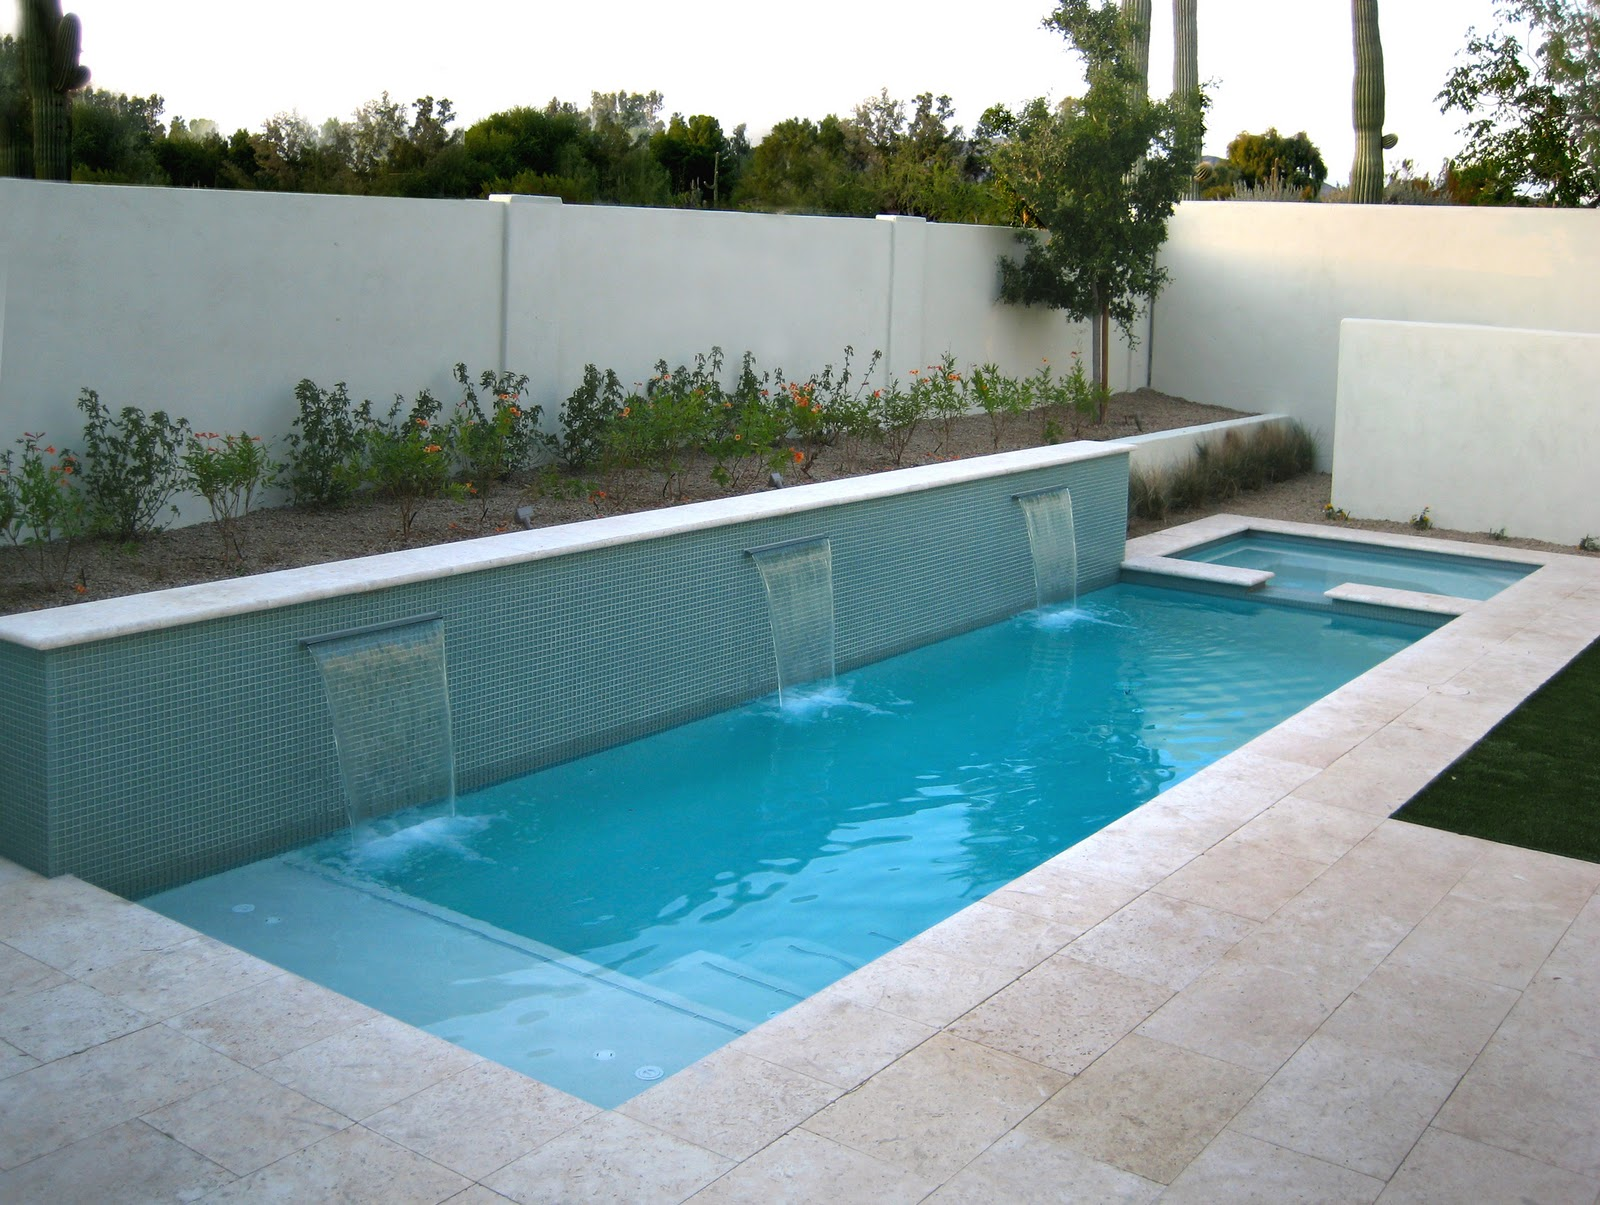 Pool designs for small backyard